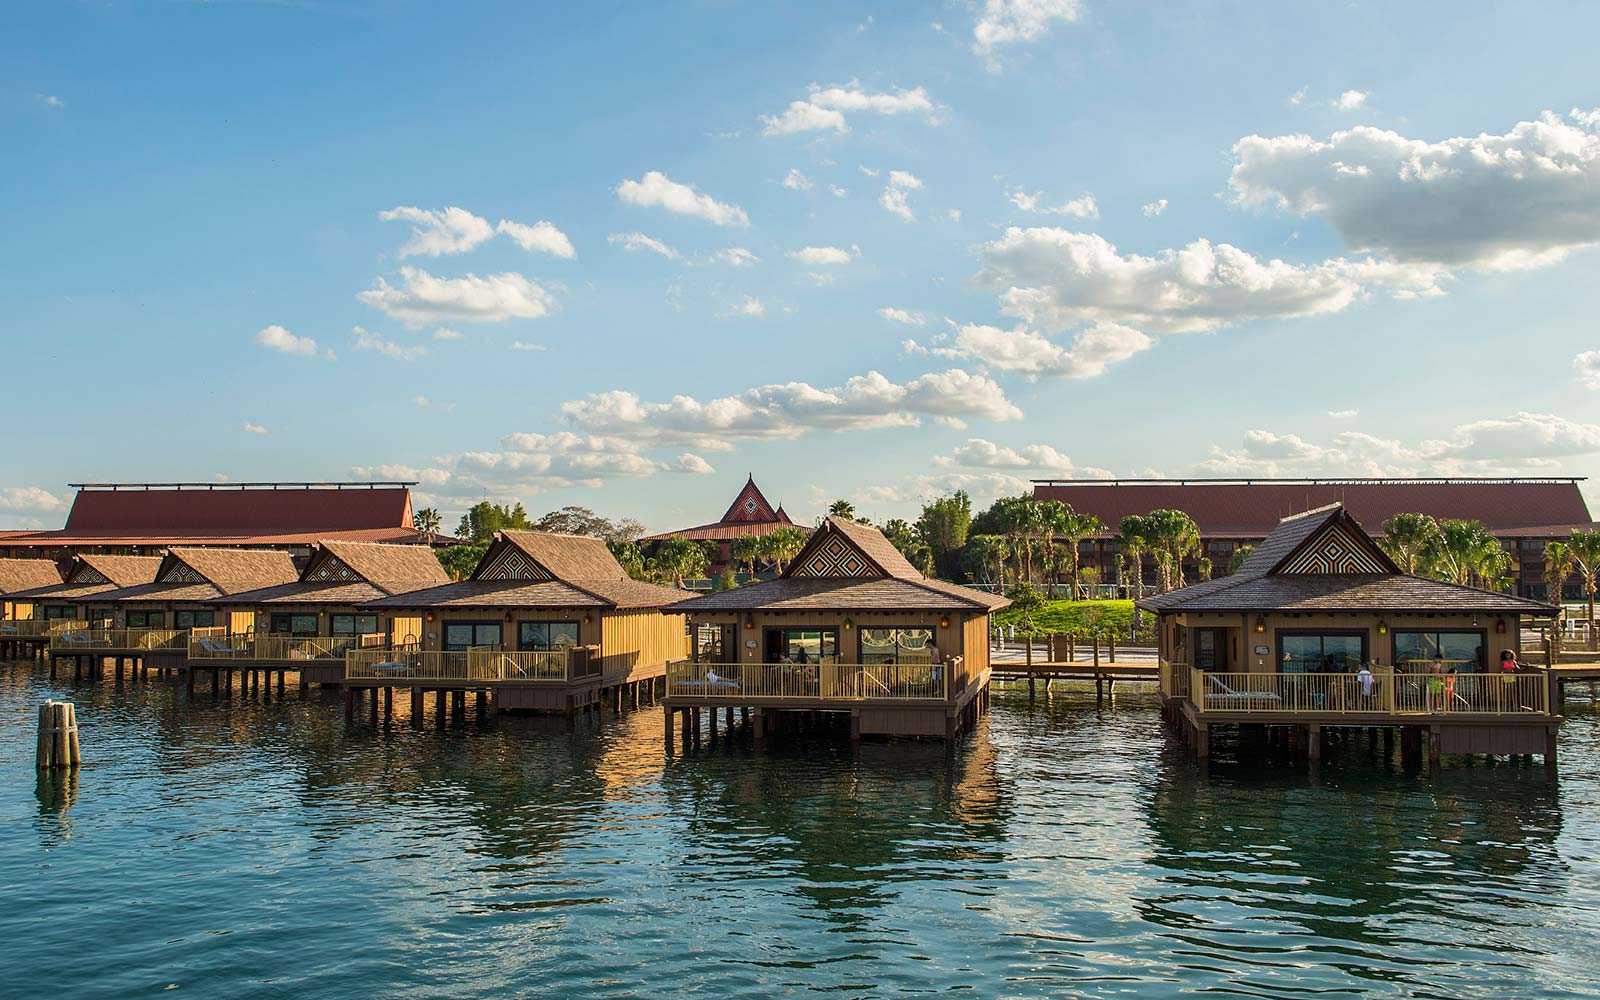 Bora Bora Bungalows at Disney's Polynesian Village Resort